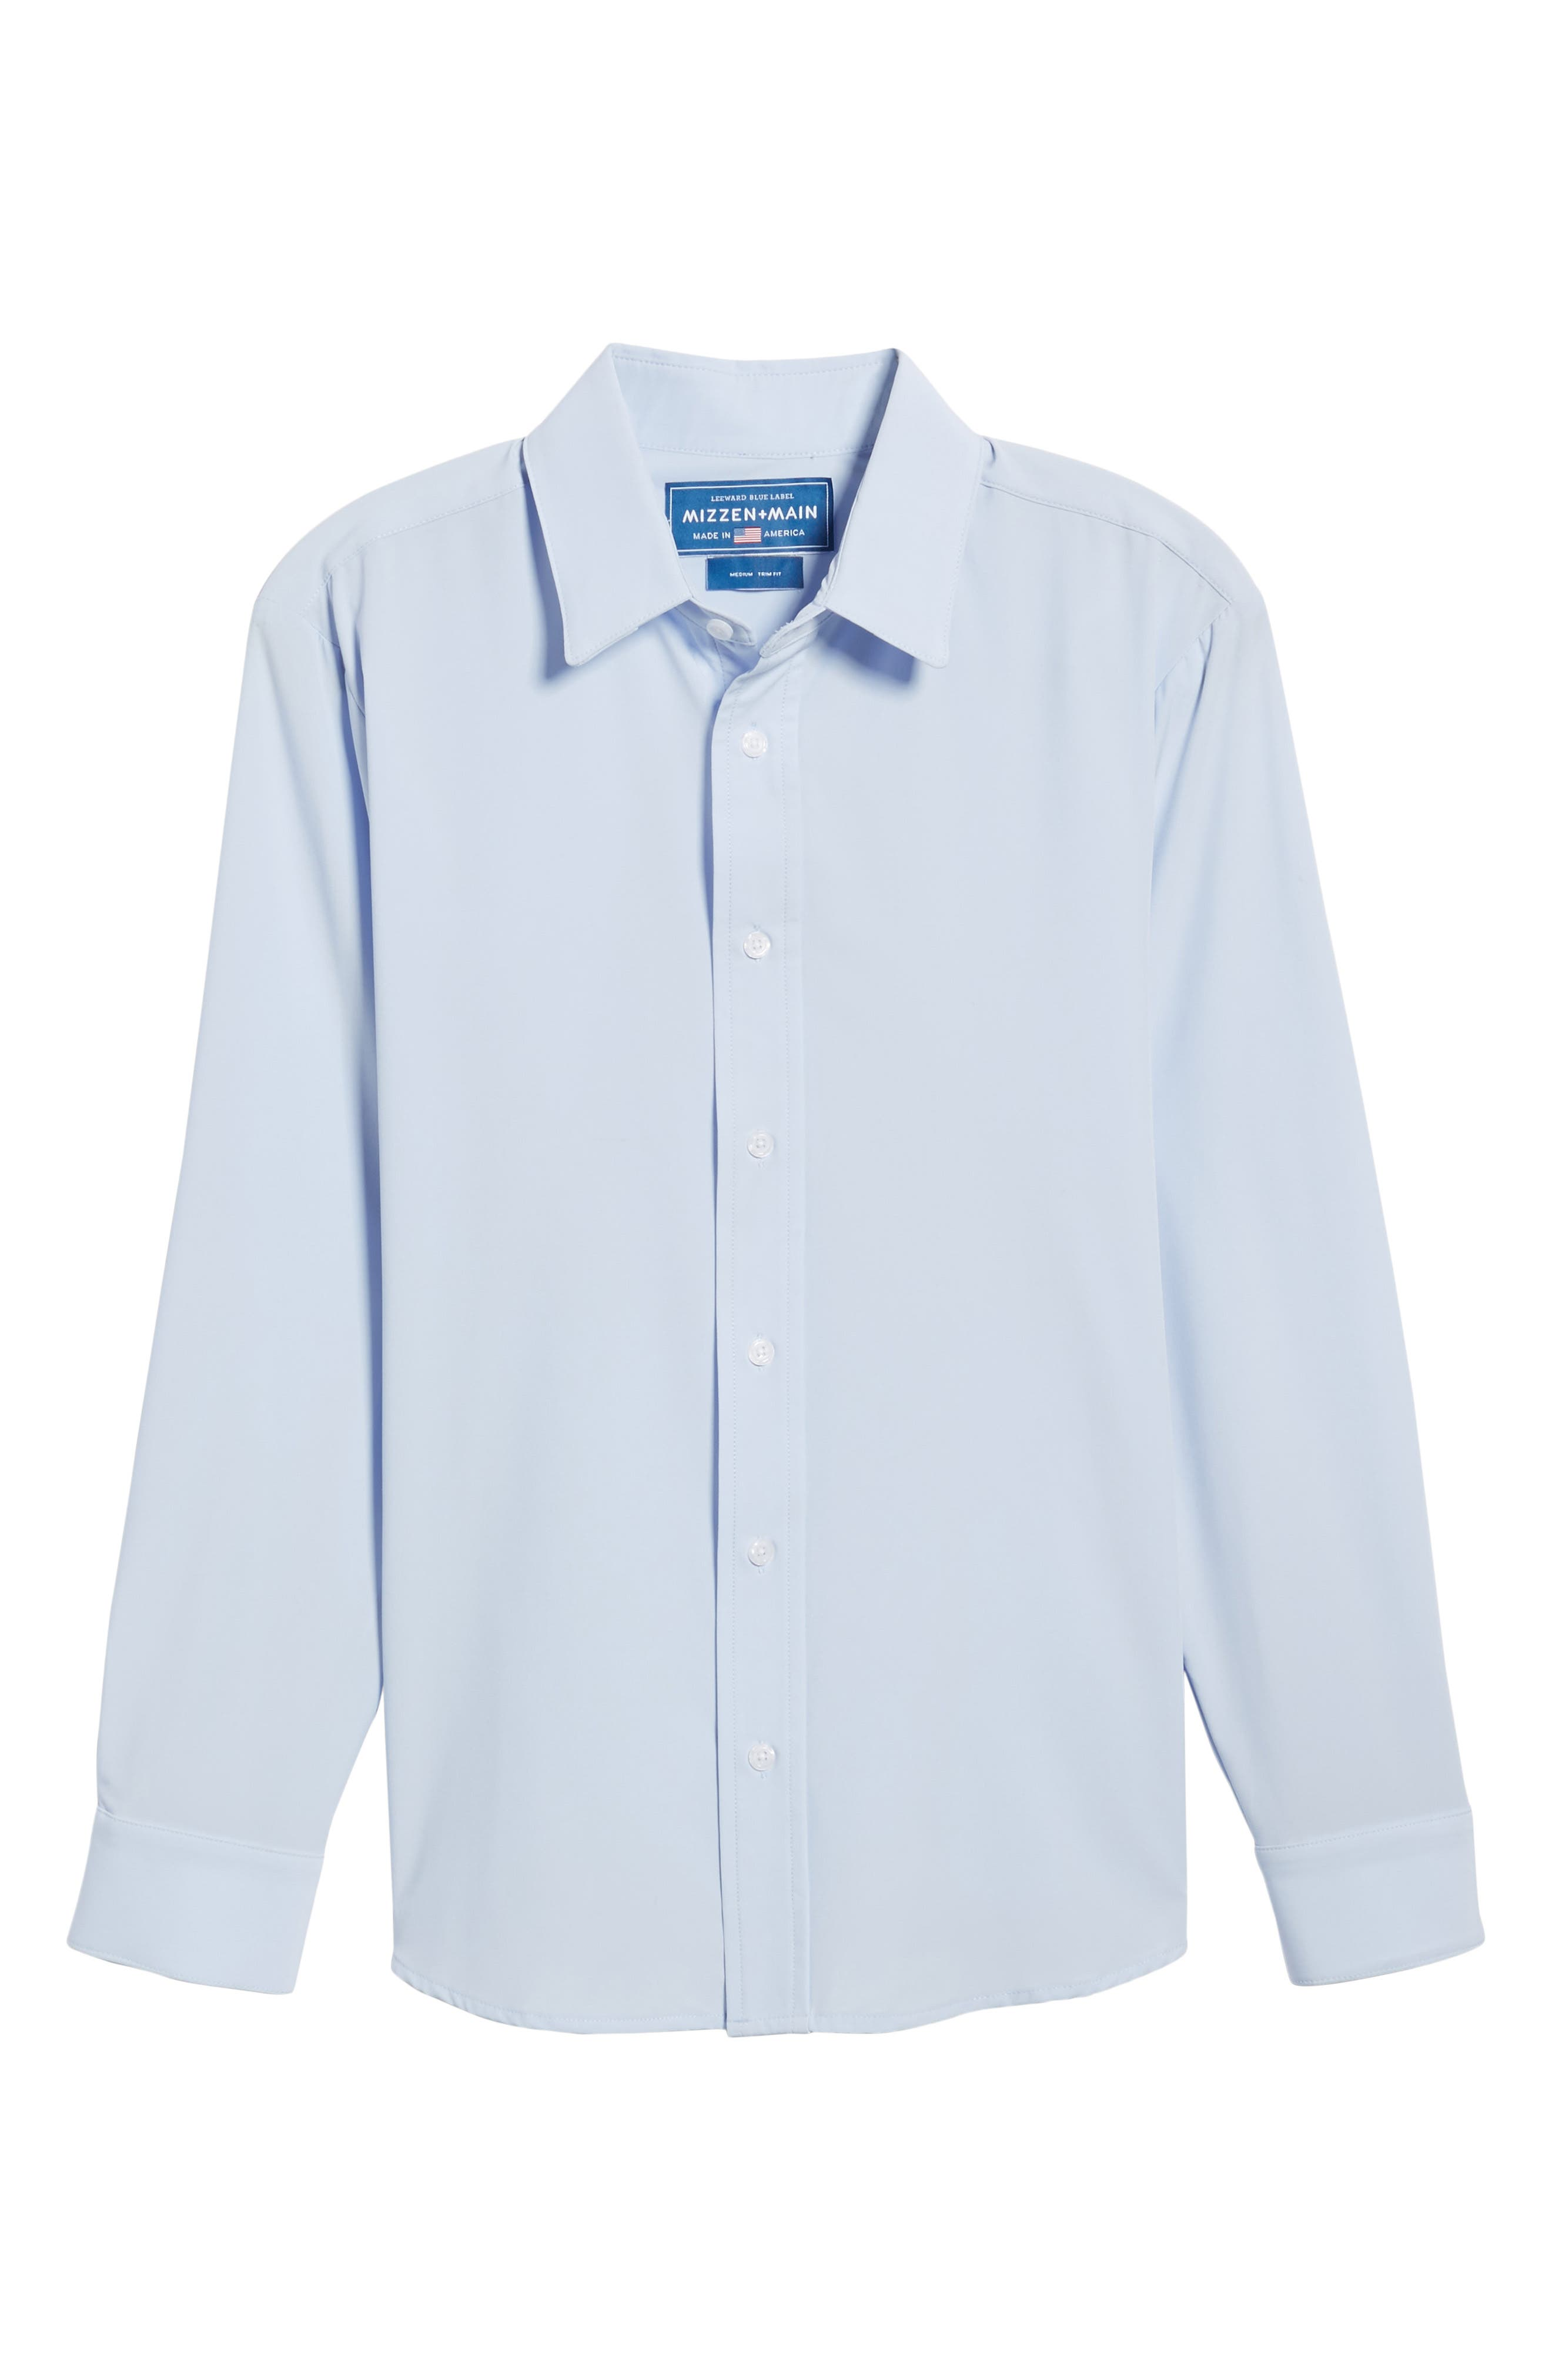 Blue Label Nelson Slim Fit Sport Shirt,                             Alternate thumbnail 6, color,                             400